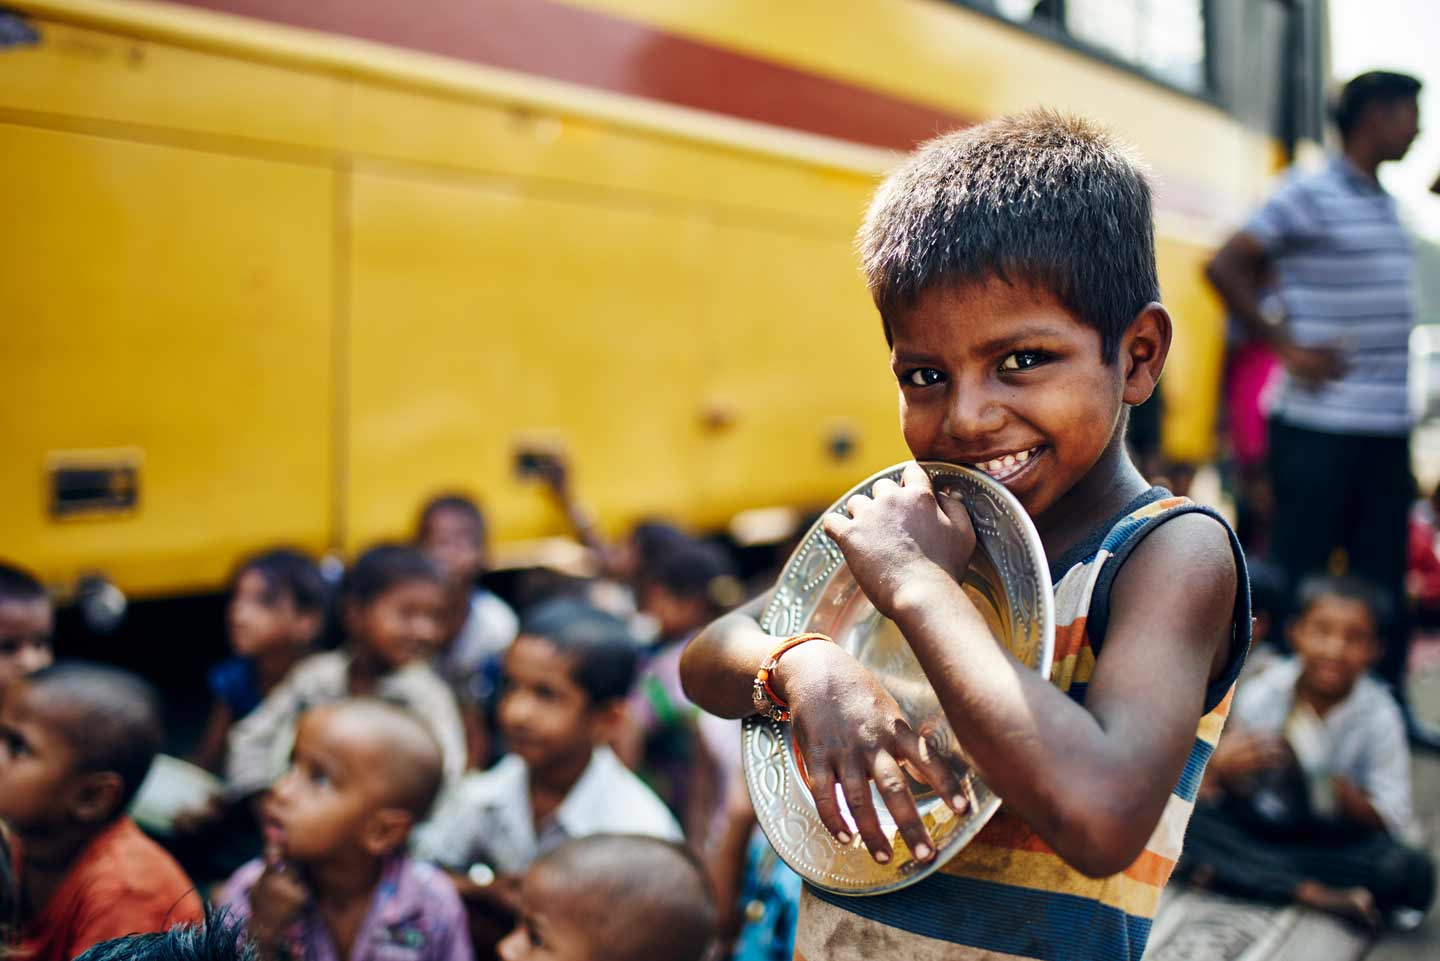 Slum kid by mobile classroom in Mumbai by UK photographer Del Manning